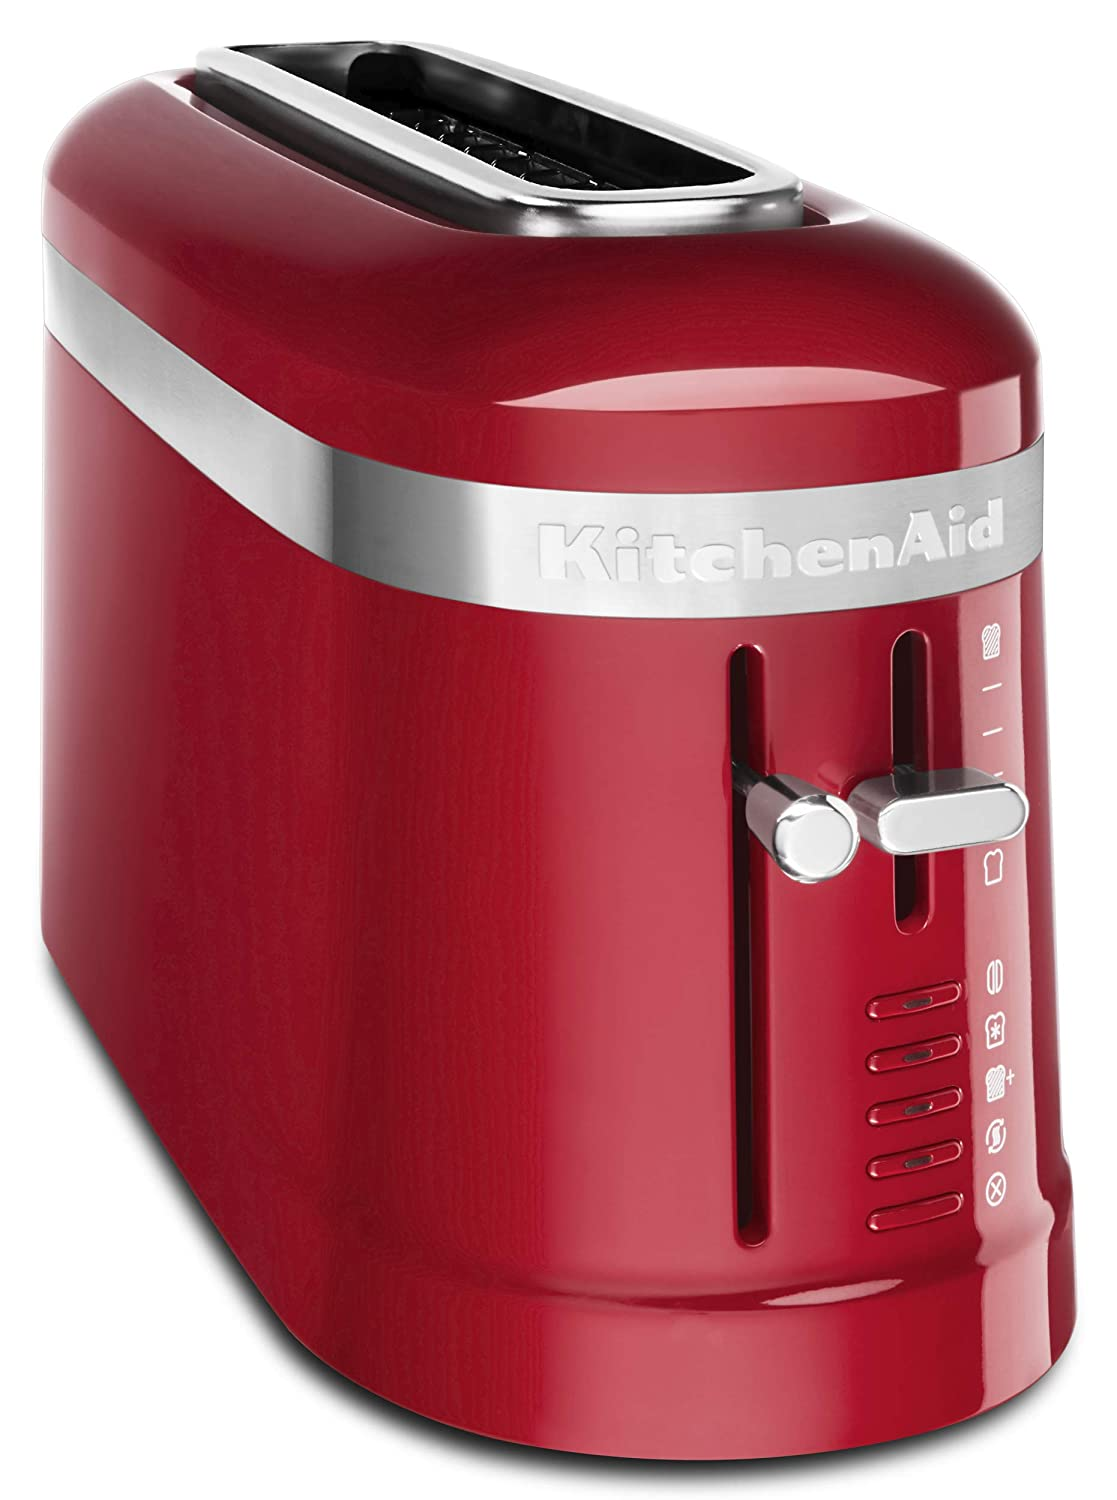 KitchenAid KMT3115ER 2 Slice Long Slot High-Lift Lever Toaster Empire Red